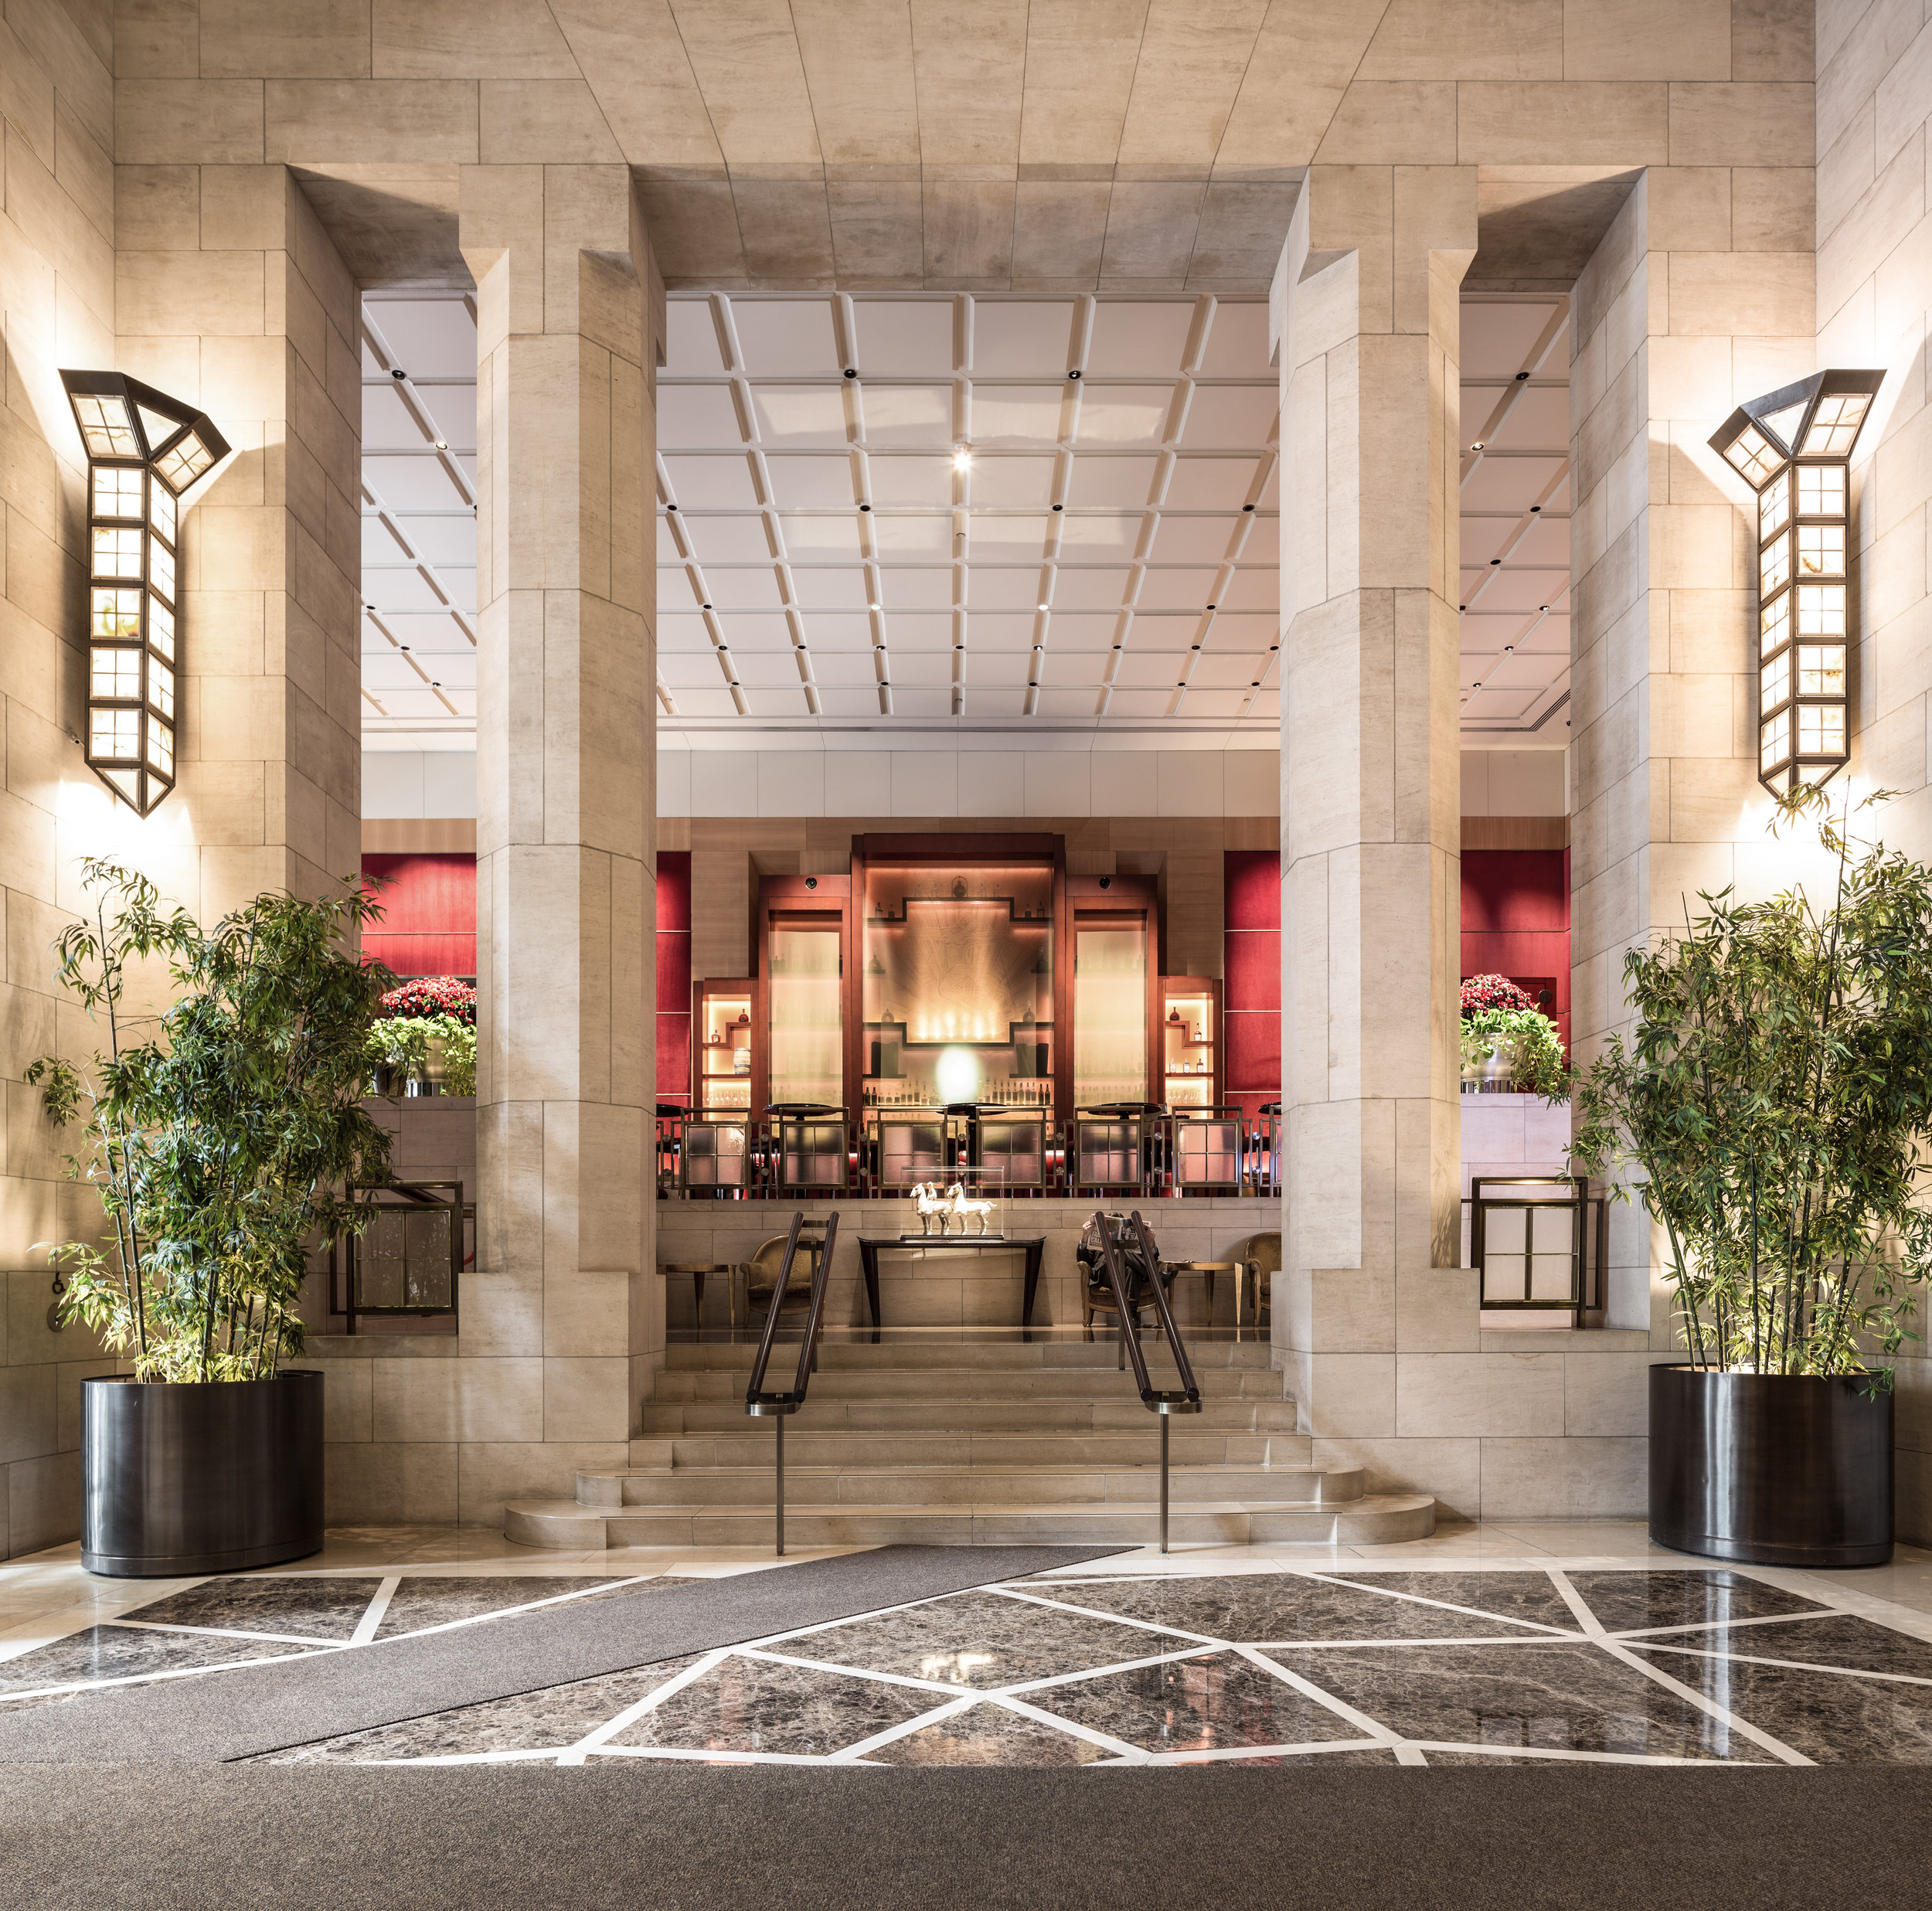 Architectural Photography - The Four Seasons Lobby